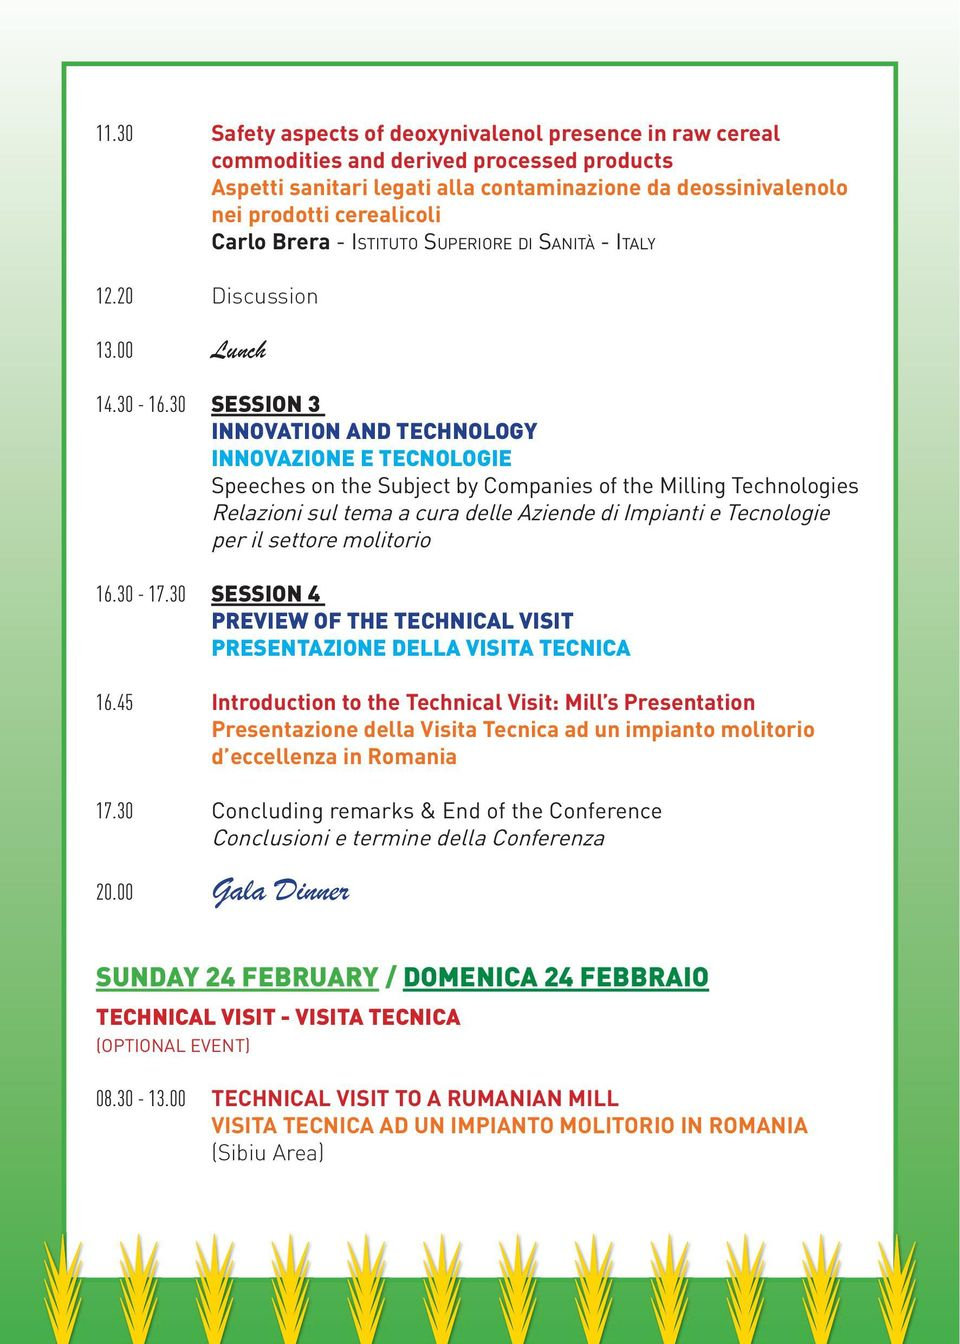 30 SESSION 3 INNOVATION AND TECHNOLOGY INNOVAZIONE E TECNOLOGIE Speeches on the Subject by Companies of the Milling Technologies Relazioni sul tema a cura delle Aziende di Impianti e Tecnologie per